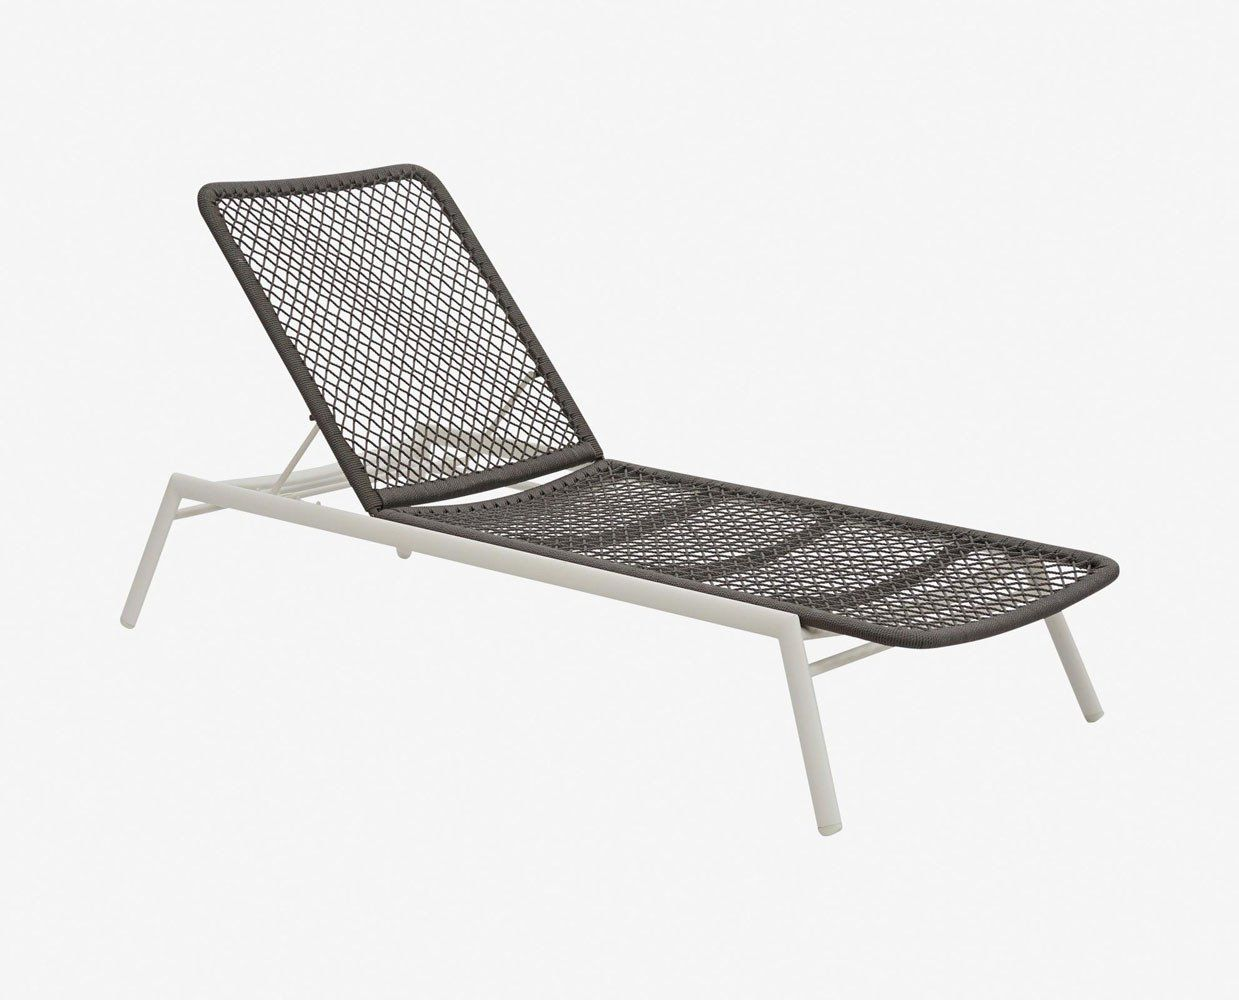 Pleasant Inula Lounger In 2019 Larson Furniture Sun Lounger Lamtechconsult Wood Chair Design Ideas Lamtechconsultcom